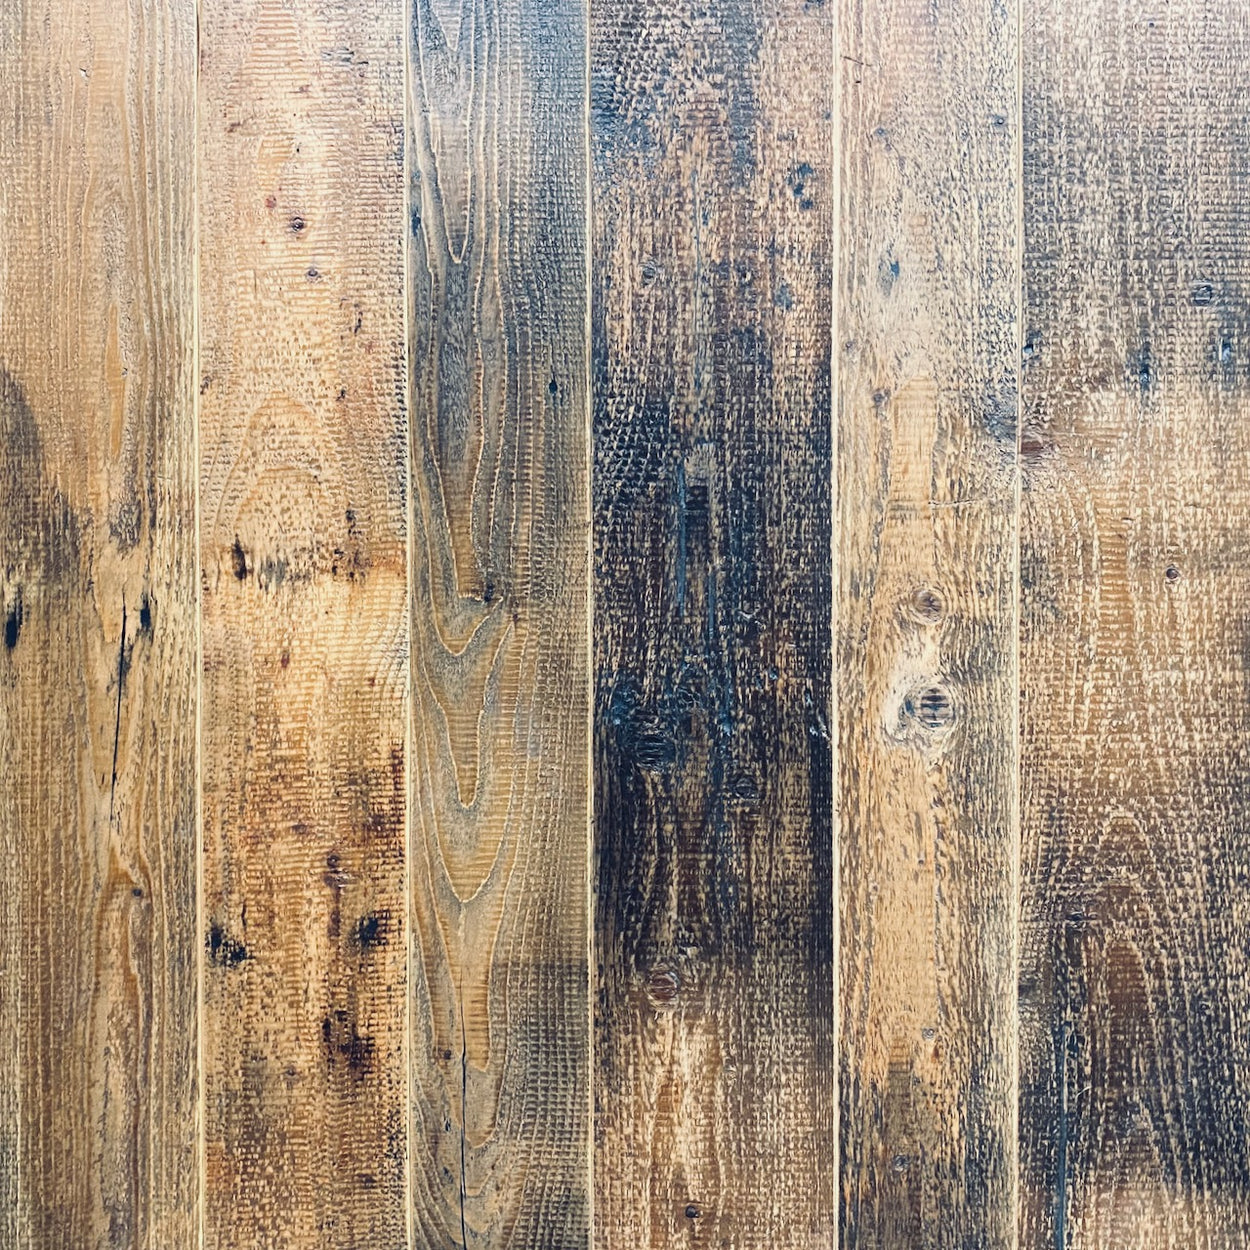 Sample of Industrial Wall Cladding Boards